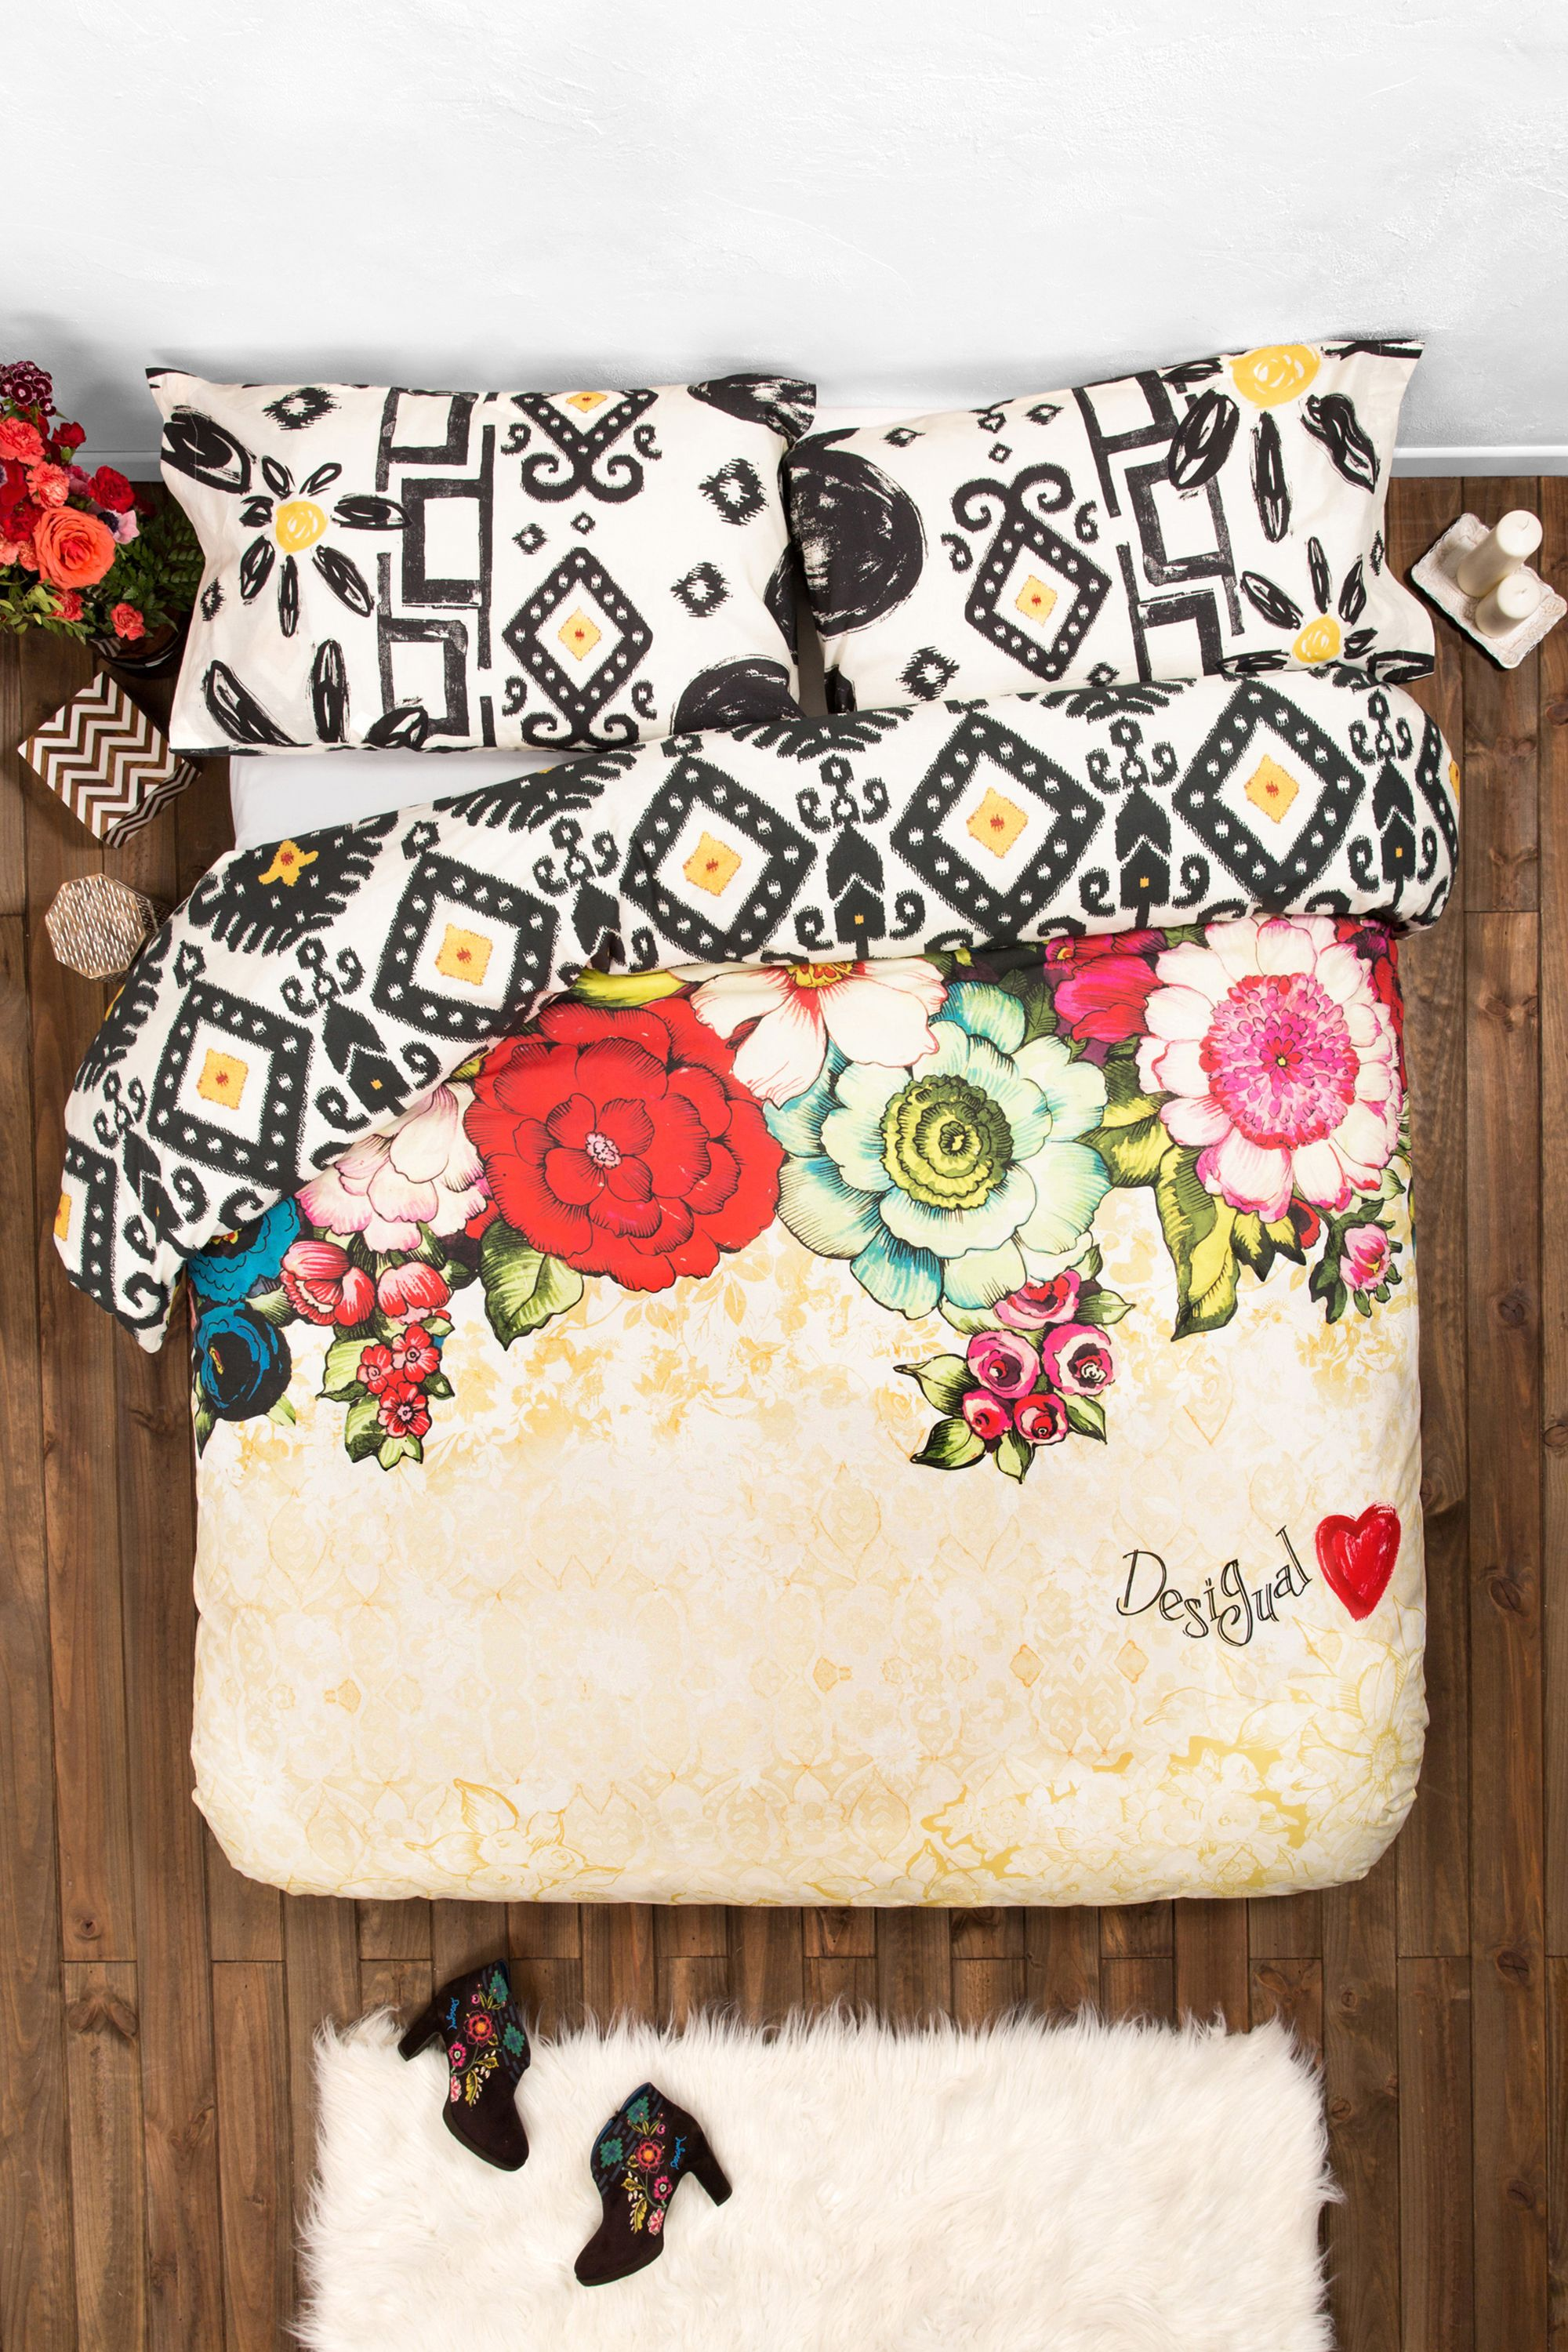 Cuscini Divano Desigual.This Reversible Duvet Cover And Pillow Set From Desigual Is The